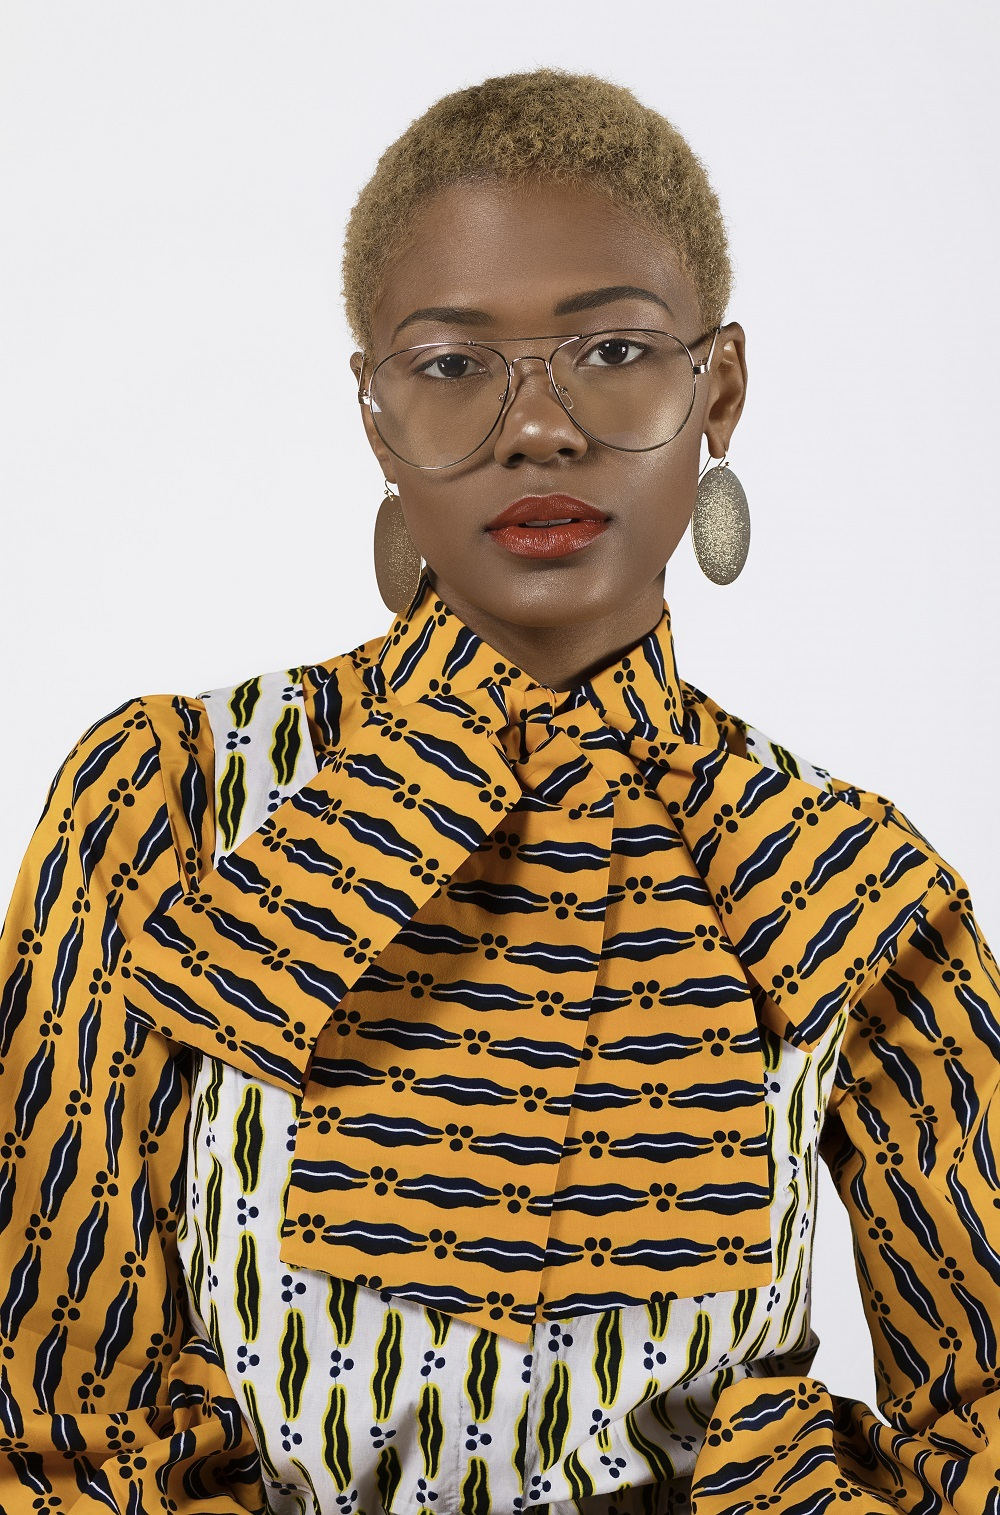 close up of a woman wearing glasses and an ankara print dress designed by Reuben Reuel